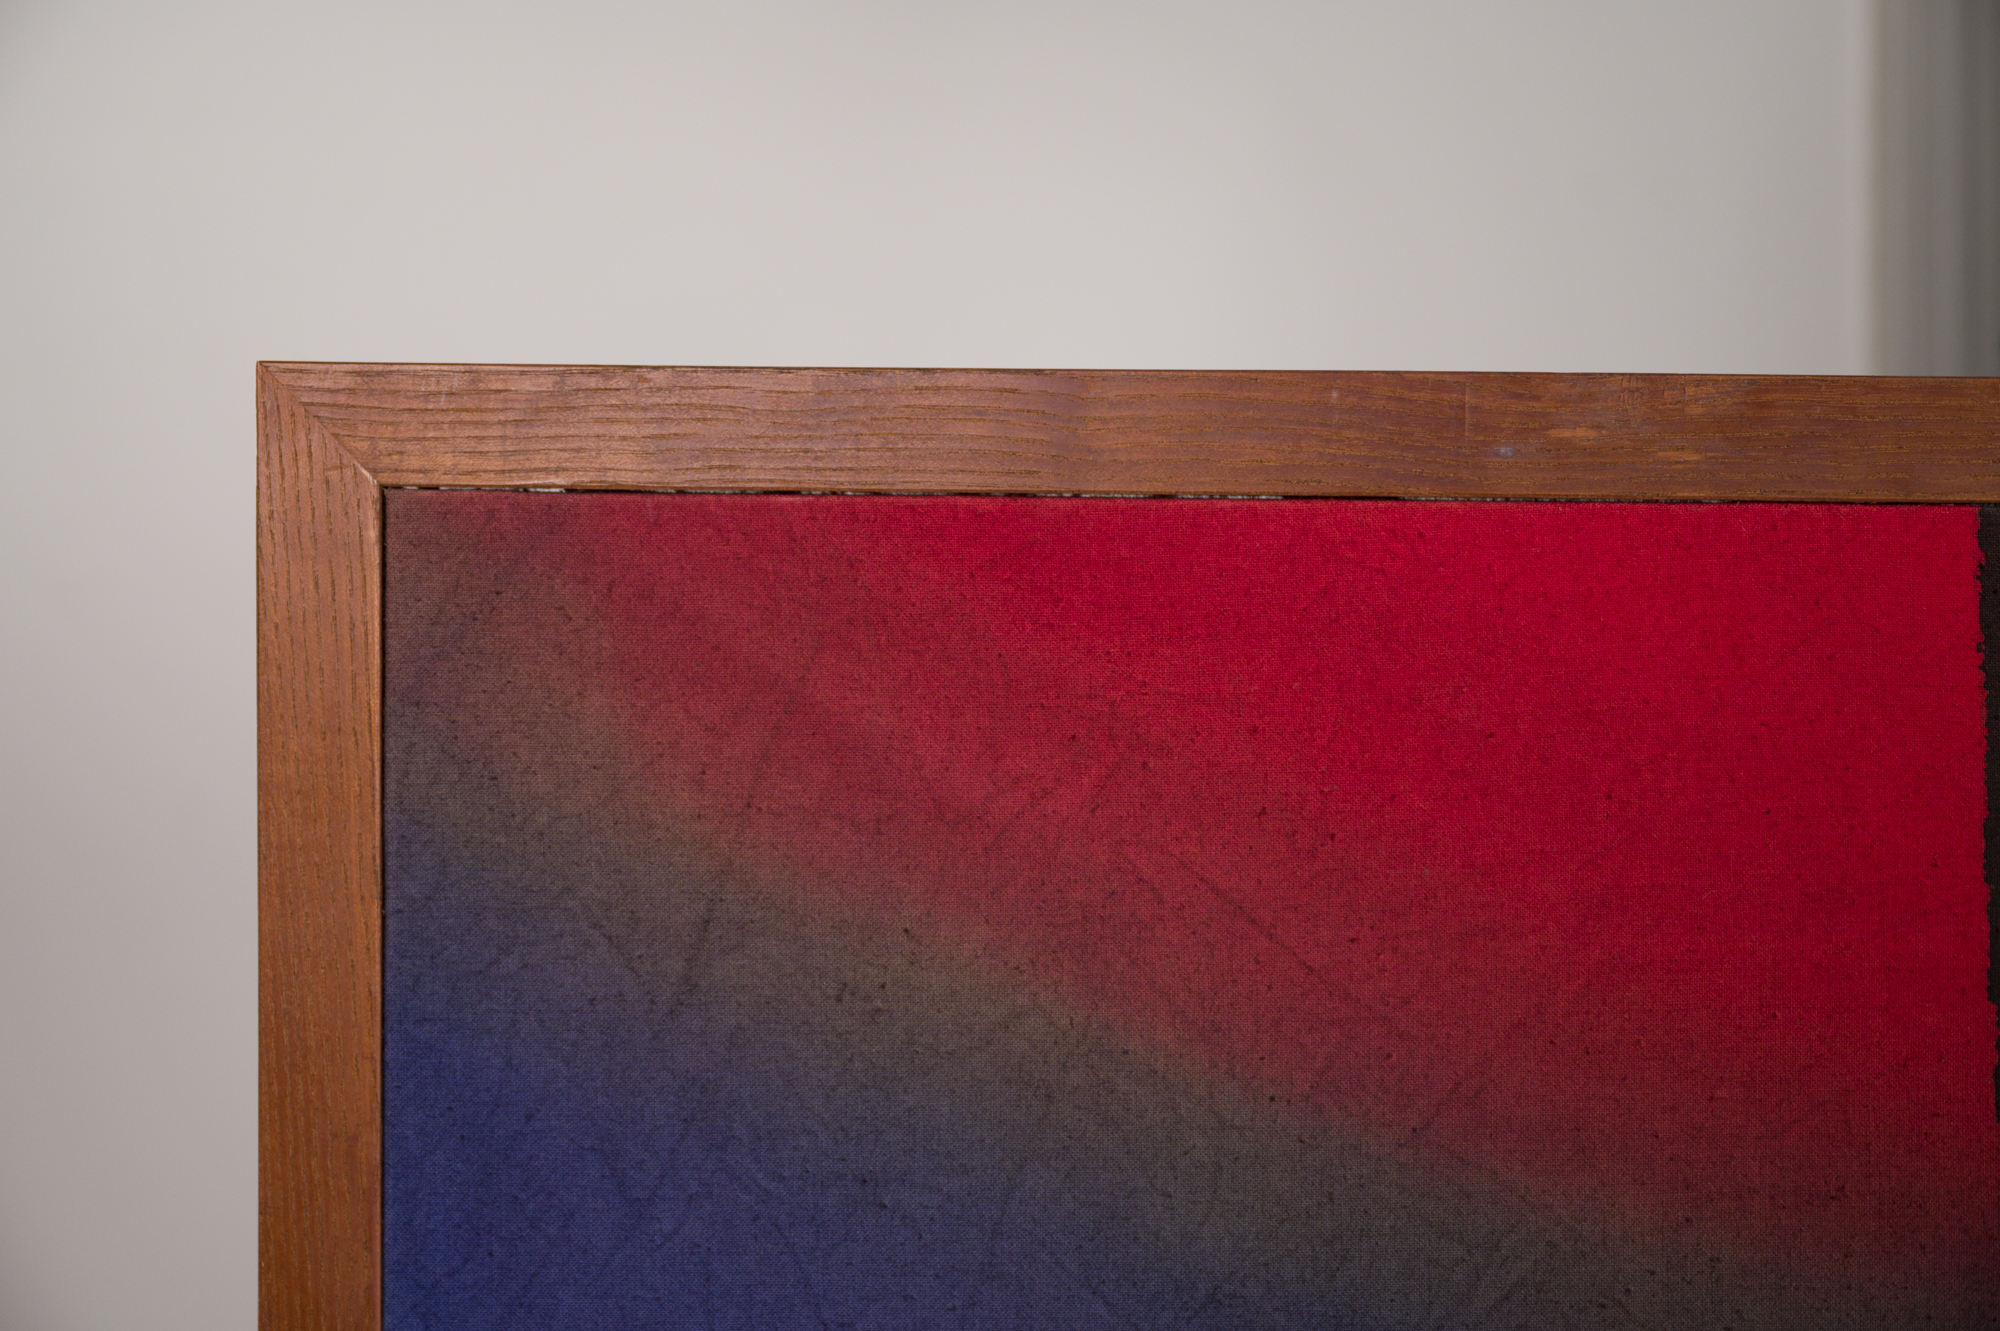 Japanese Two Panel Screen: Geometric Design on Mounted Textile